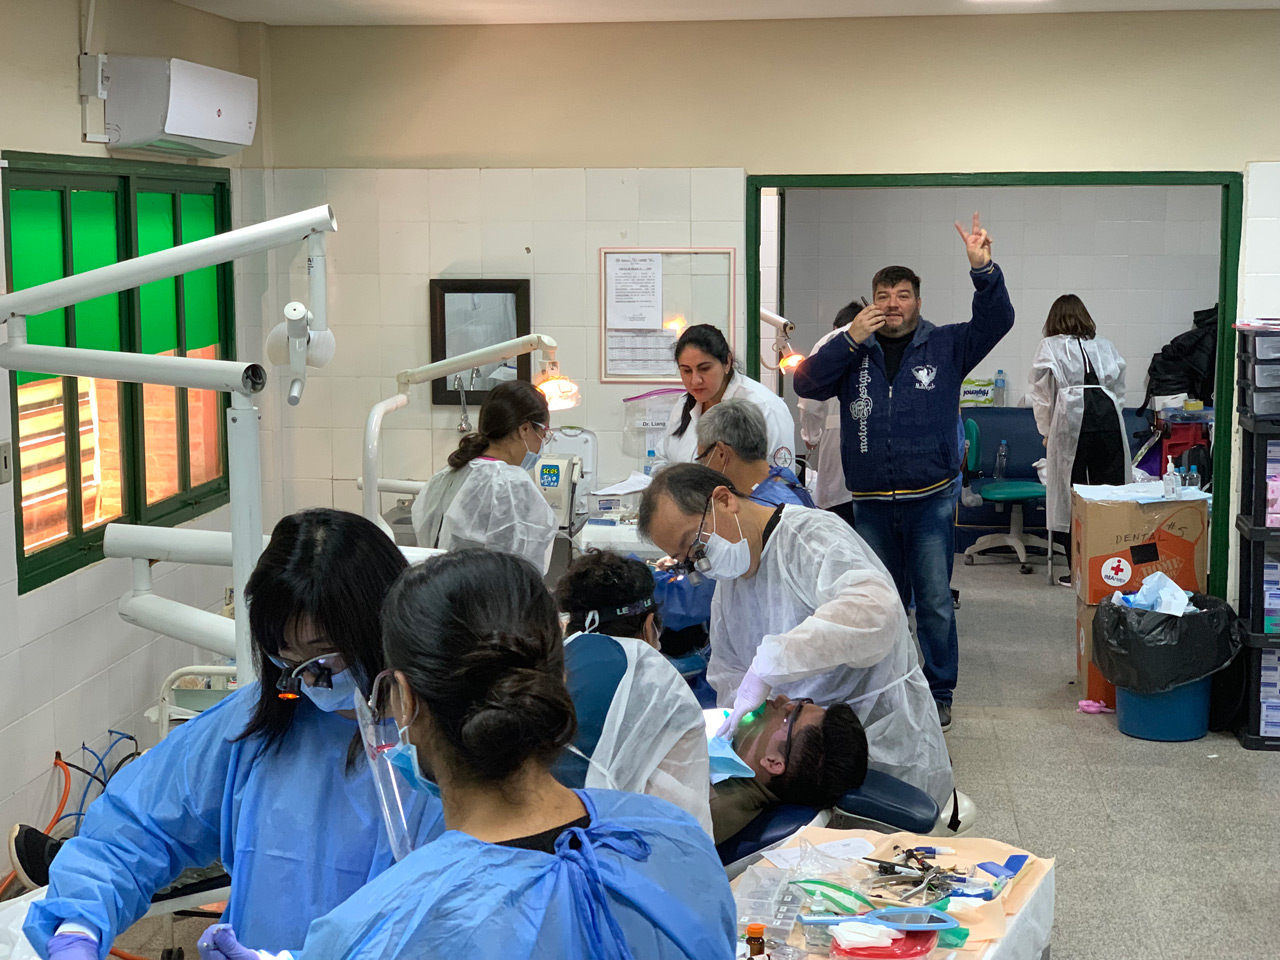 The only guy not working in this picture is Dr. Roberto Cardoza, Dental Clinic Director at the hospital. Just kidding! Thank you Dr. Roberto for constantly troubleshooting,  fixing dental chairs, compressors, lights, autoclaves so we can continue to see patients.